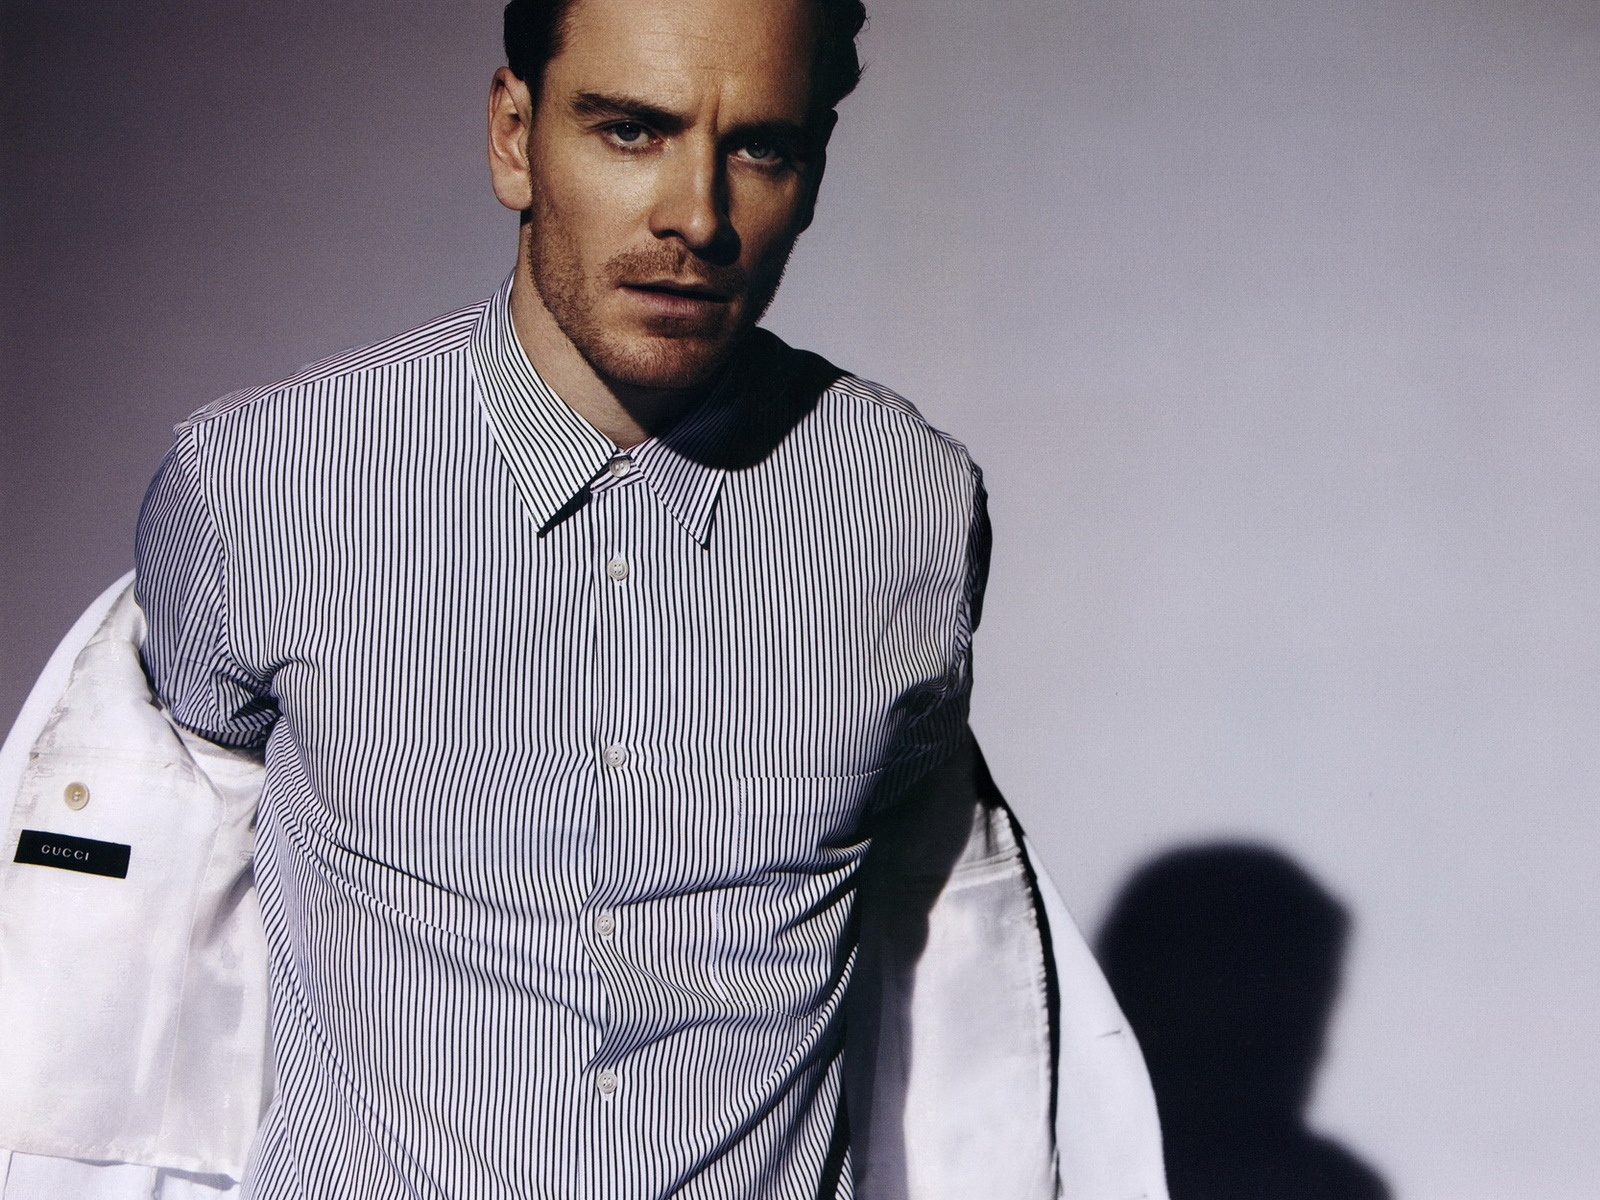 Michael Fassbender Wallpapers HQ